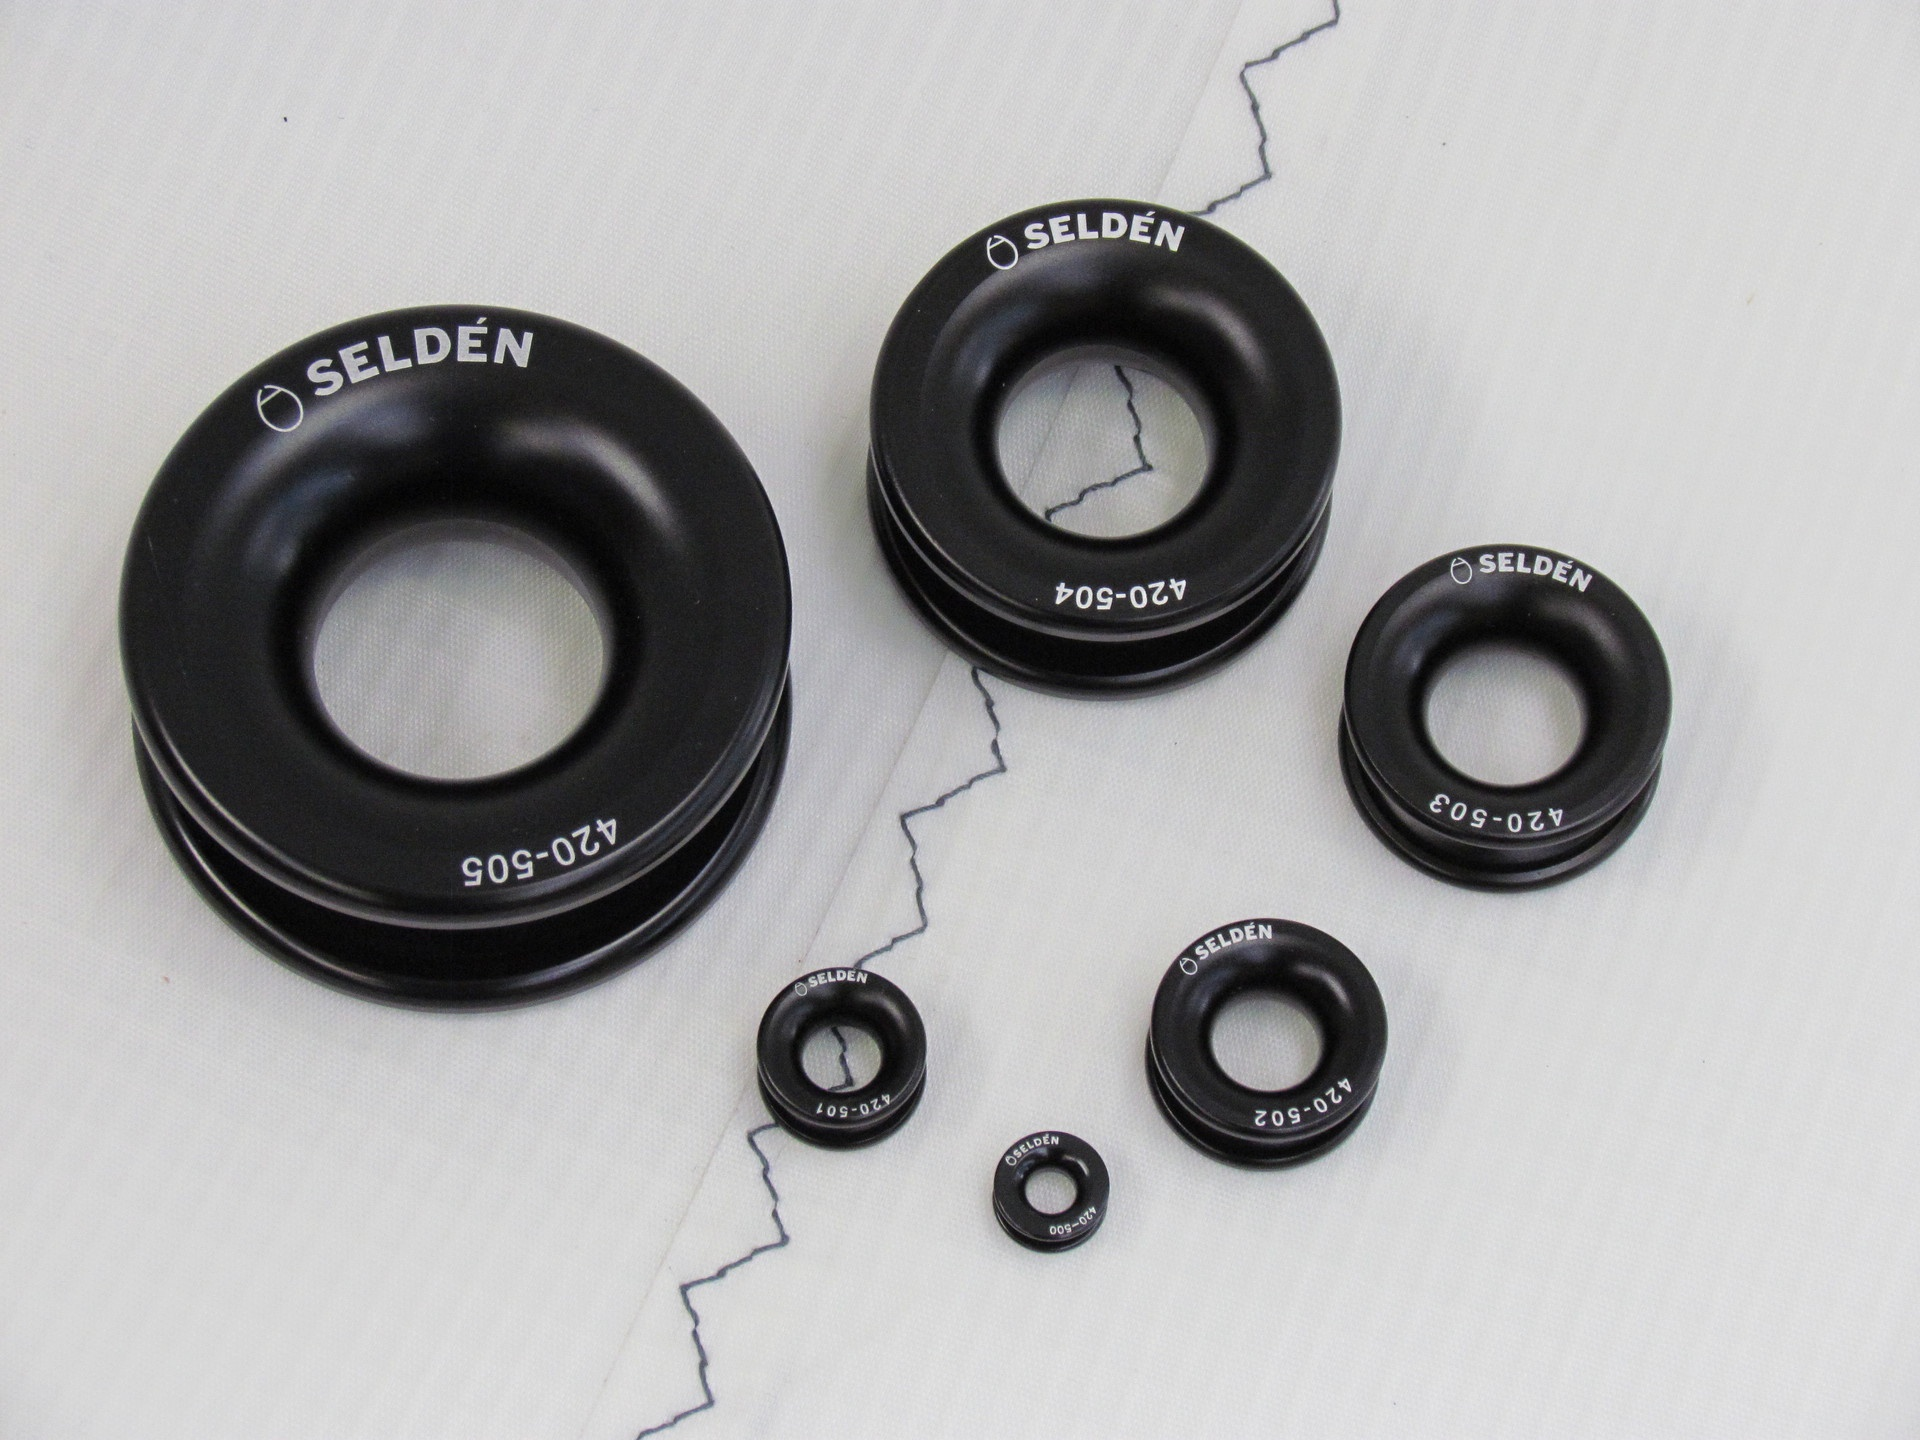 Selden Low Friction Ring 12/5